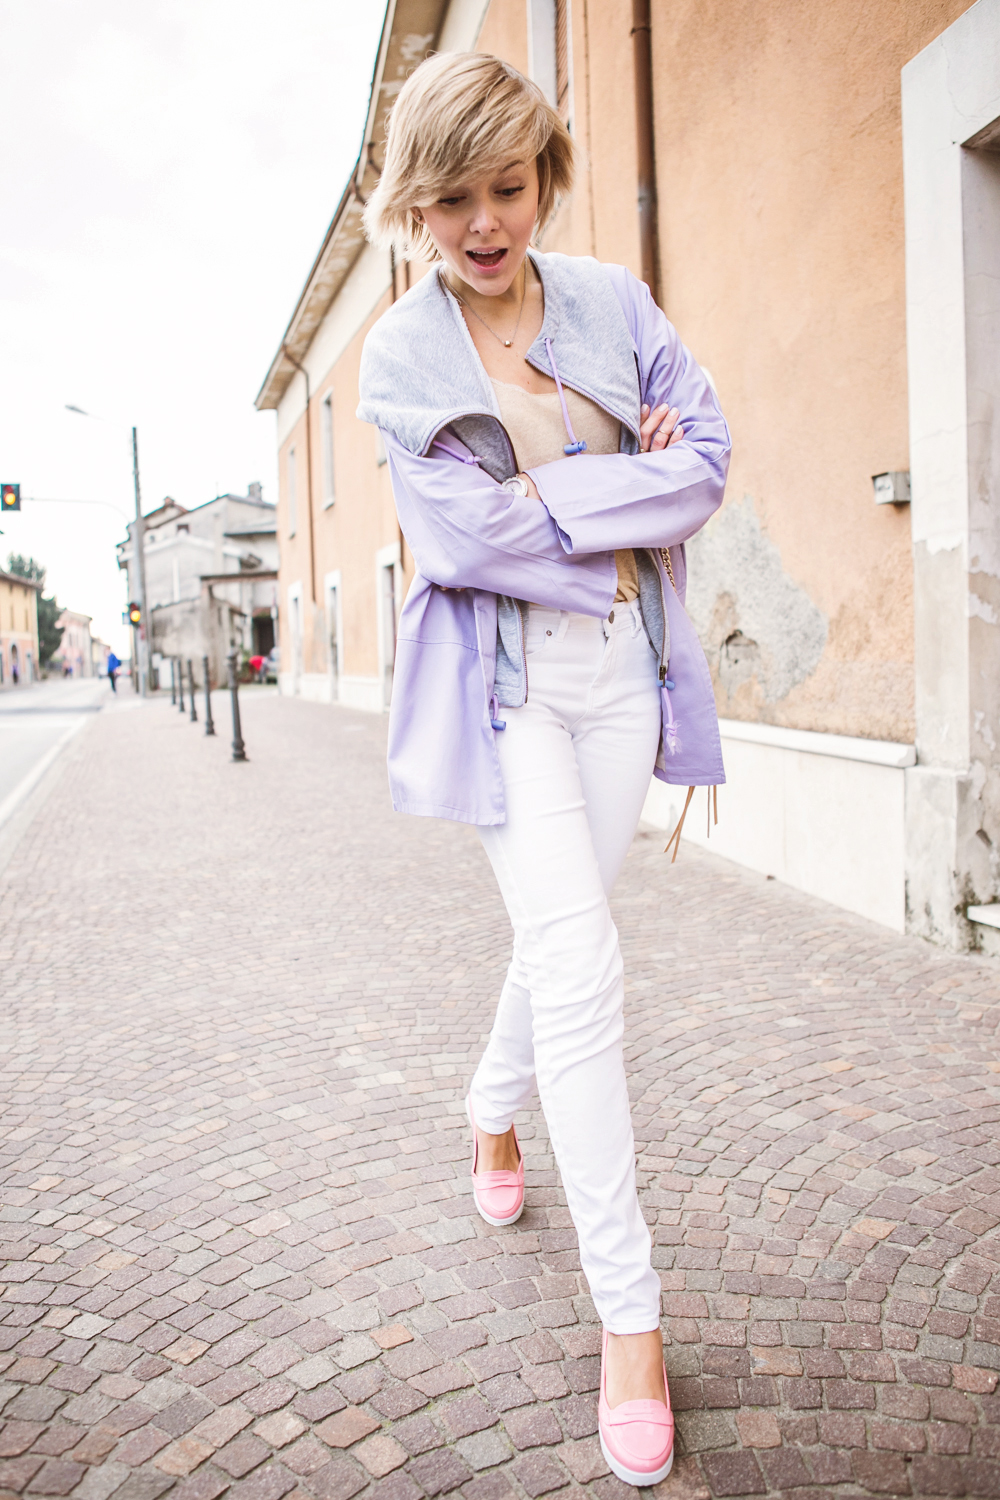 1darya kamalova thecablook fashion blog russian blogger italy moda street style pixie short hair fashion blogger infiniteen double jacket pastel colour outfit asos white denim jeans rebecca minkoff mini mac bag pink shoes flat stefanet beige top-7